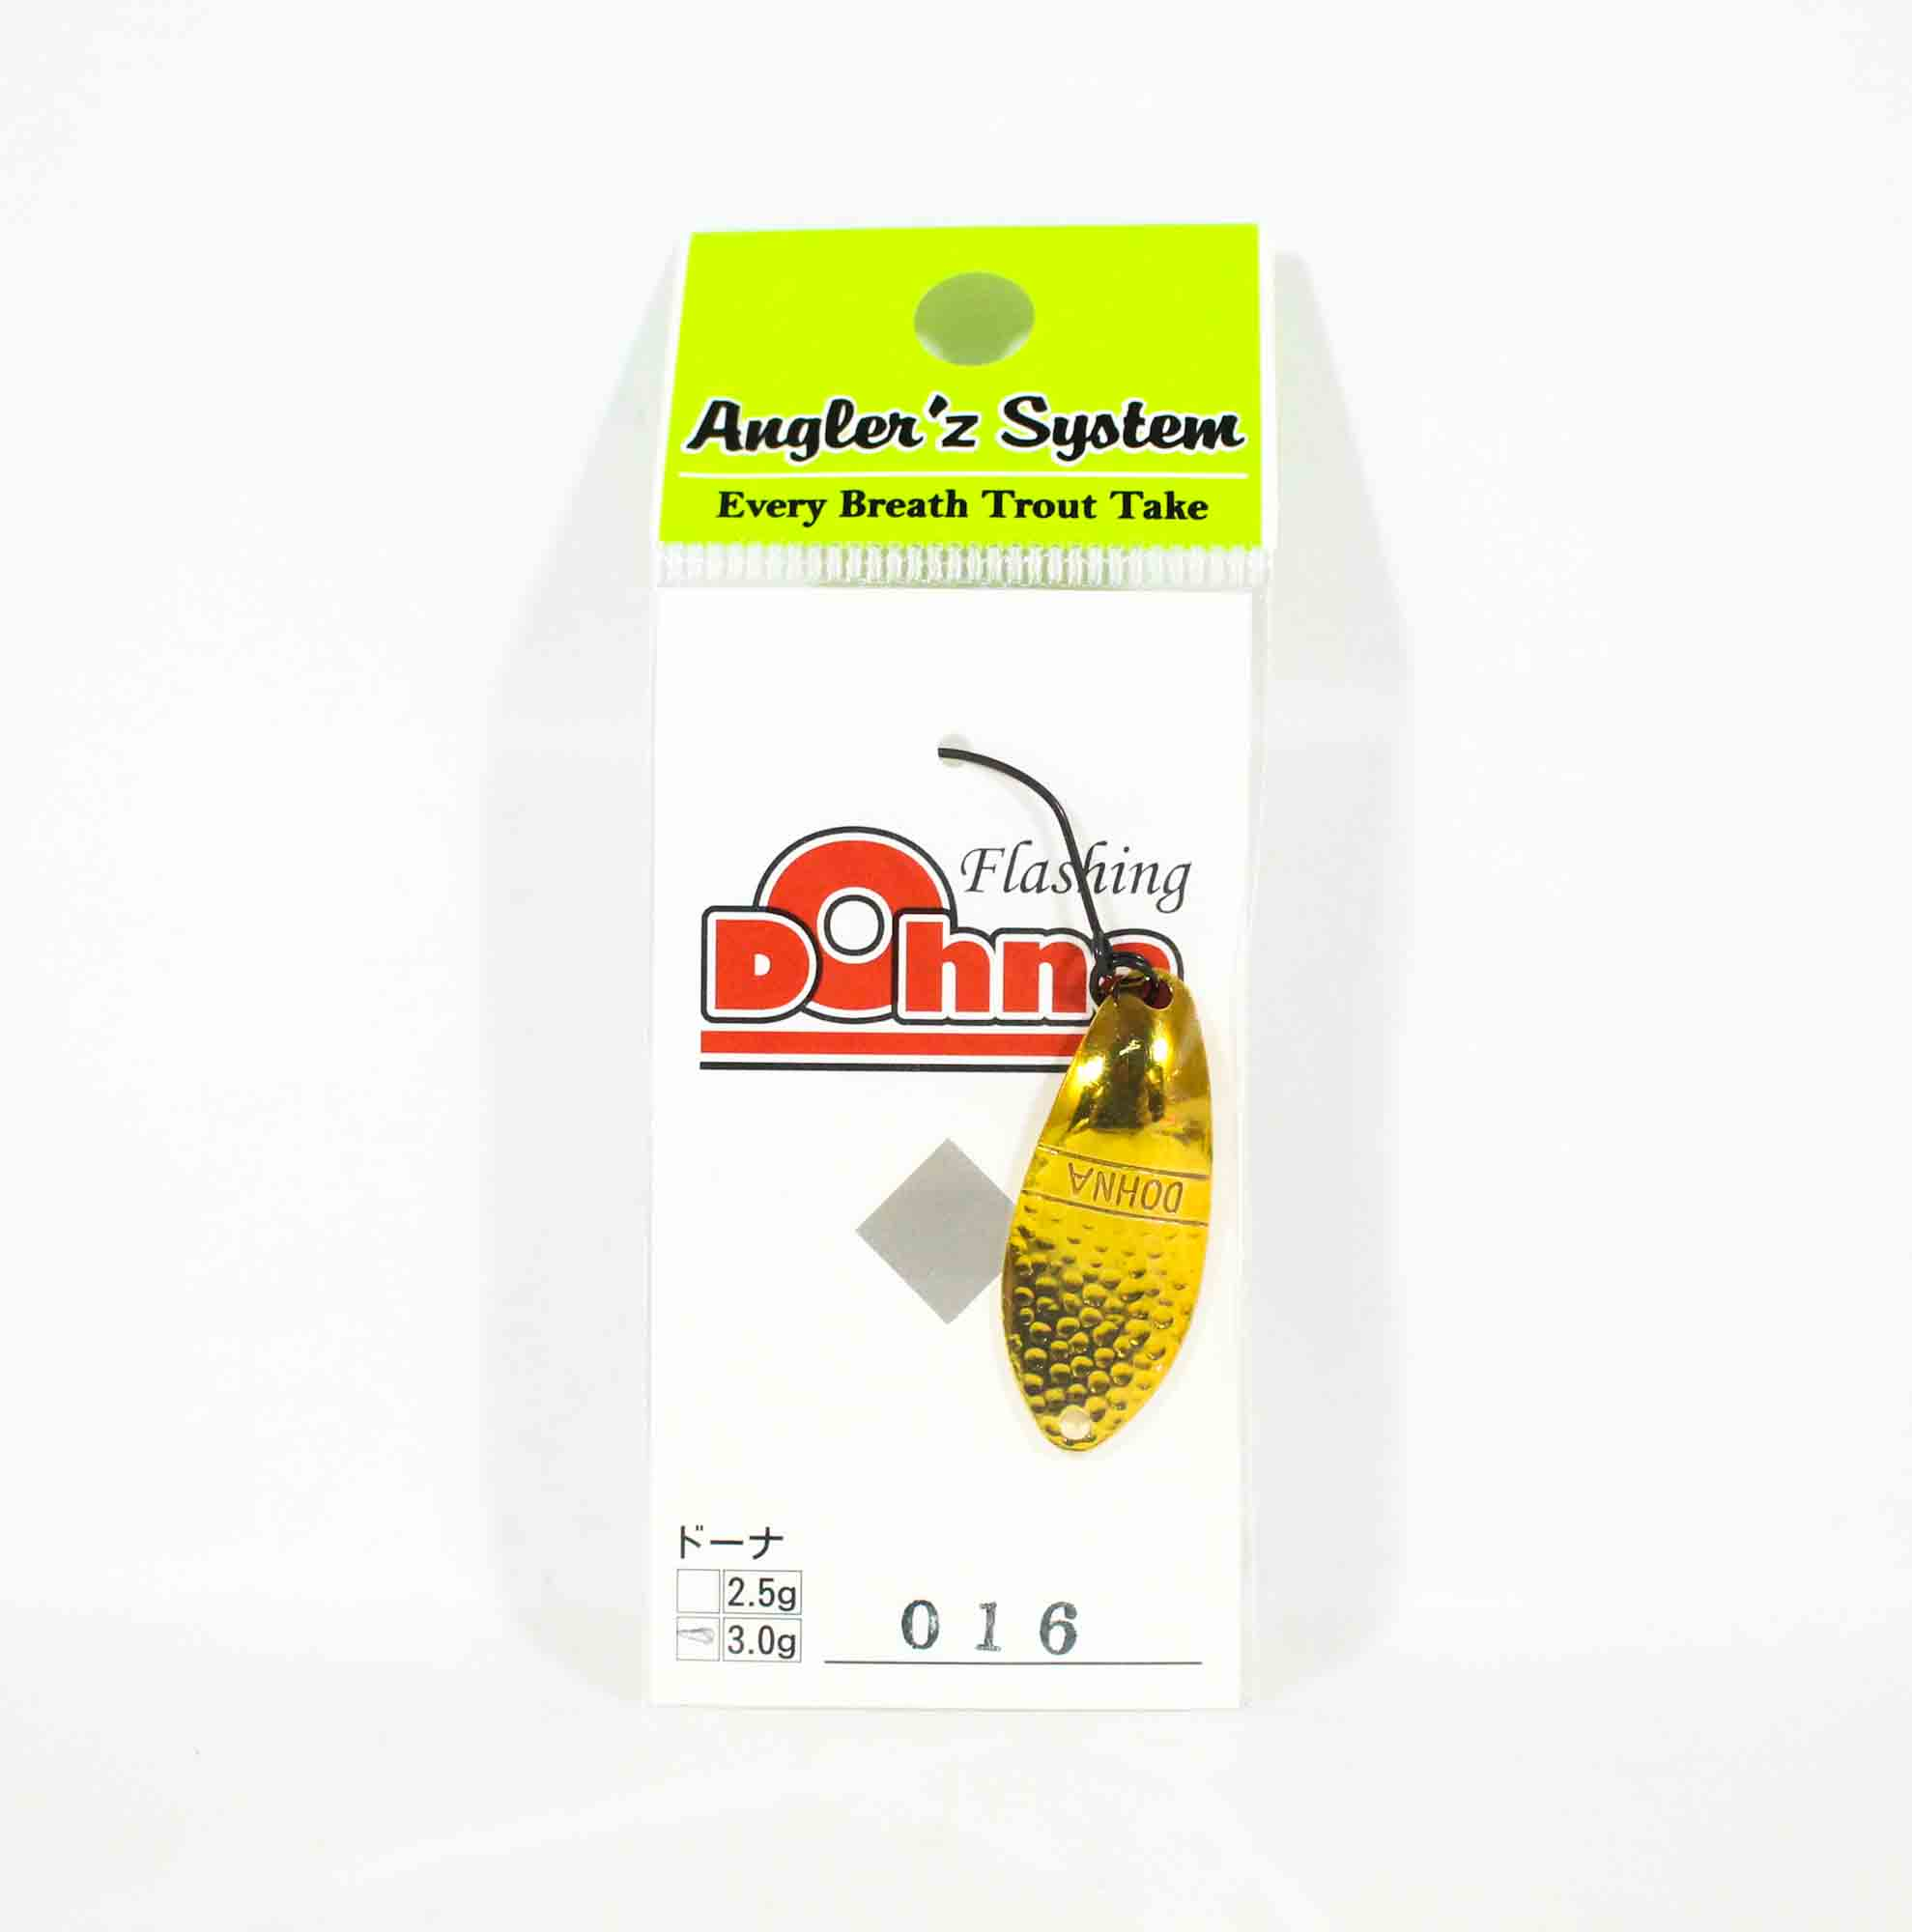 Anglers System Antem Dohna 3.0 grams Spoon Sinking Lure 016 (3605)